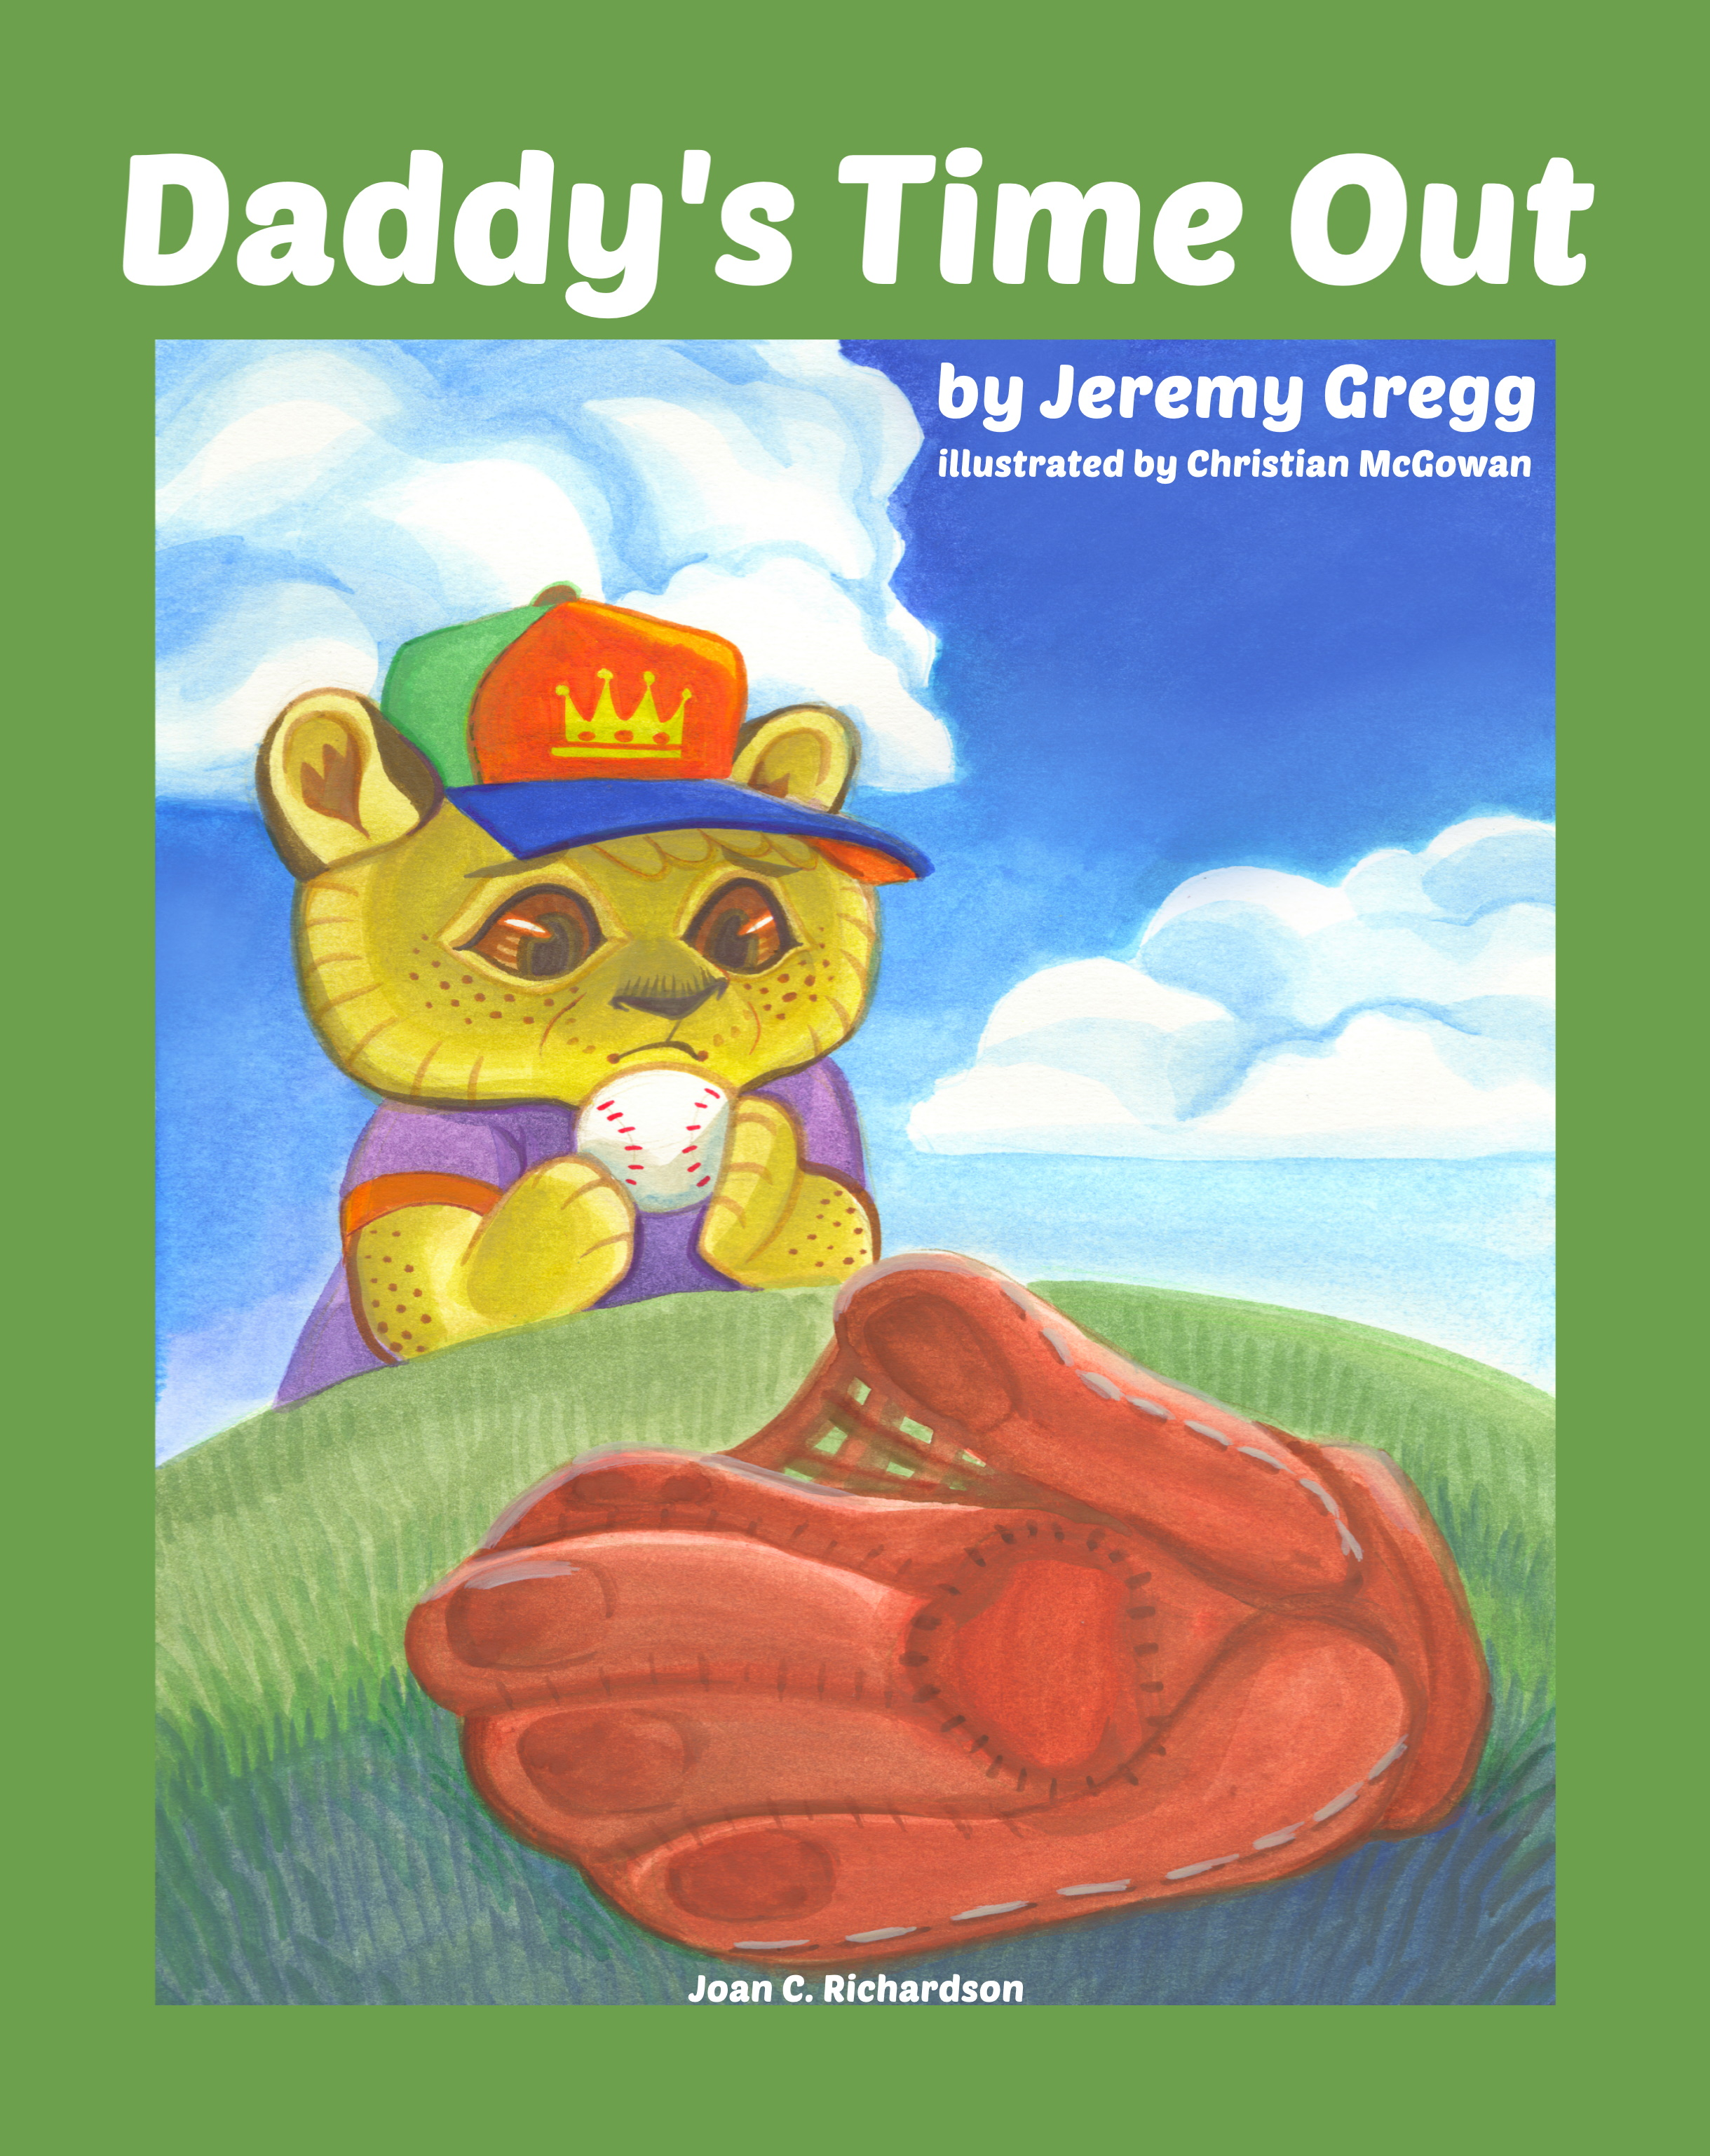 coverdaddy'stimeout1